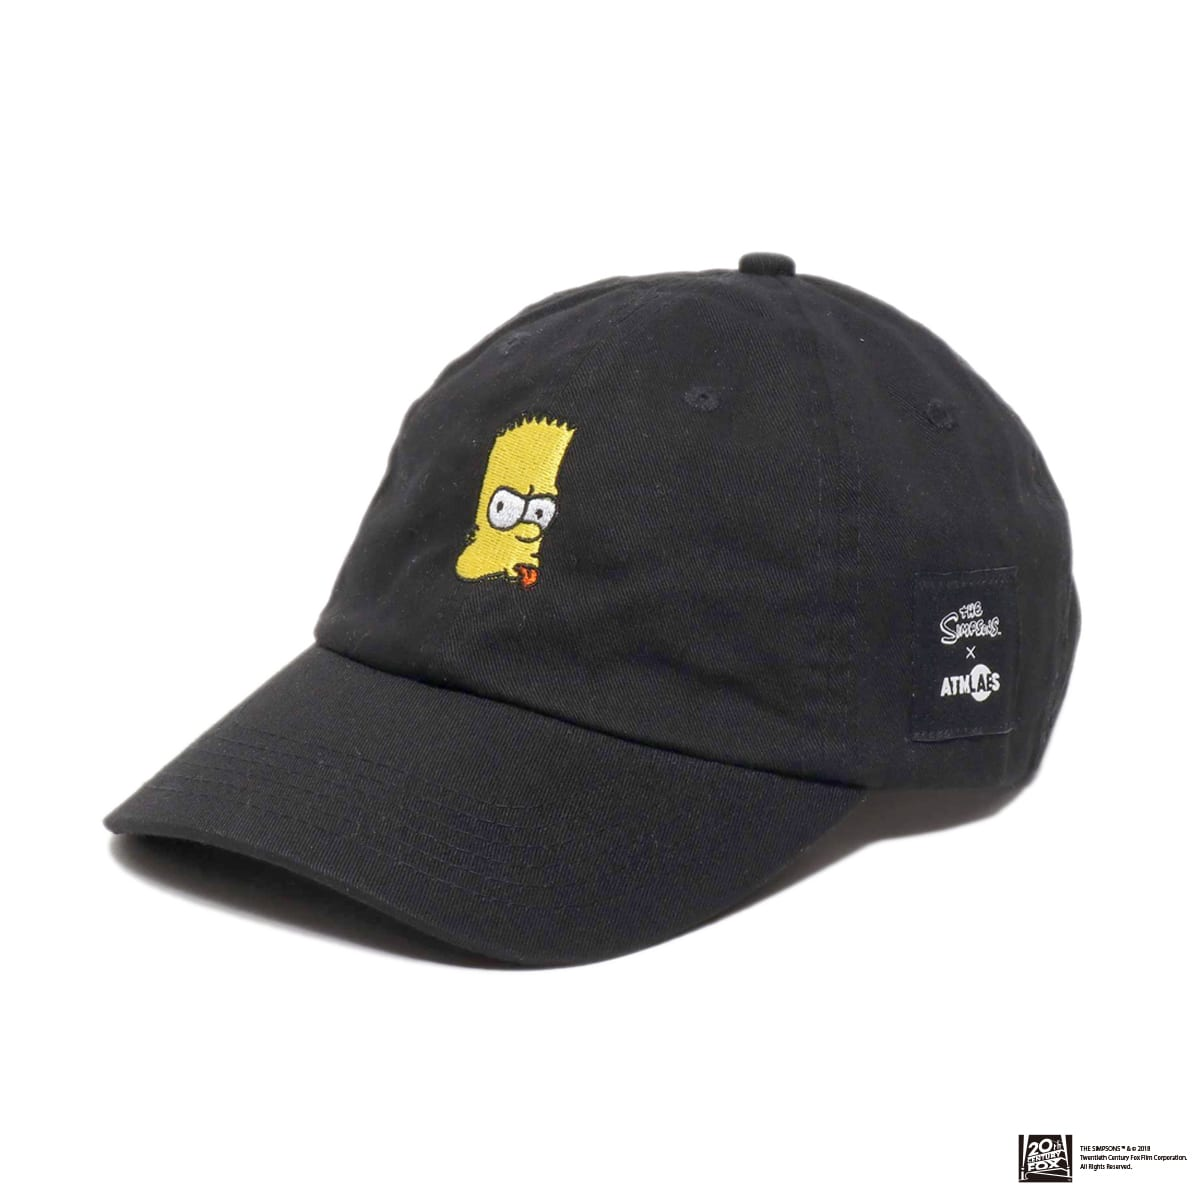 THE SIMPSONS x ATMOS LAB BART EMBROIDERY 6 PANEL CAP  BLACK 18FW-I_photo_large